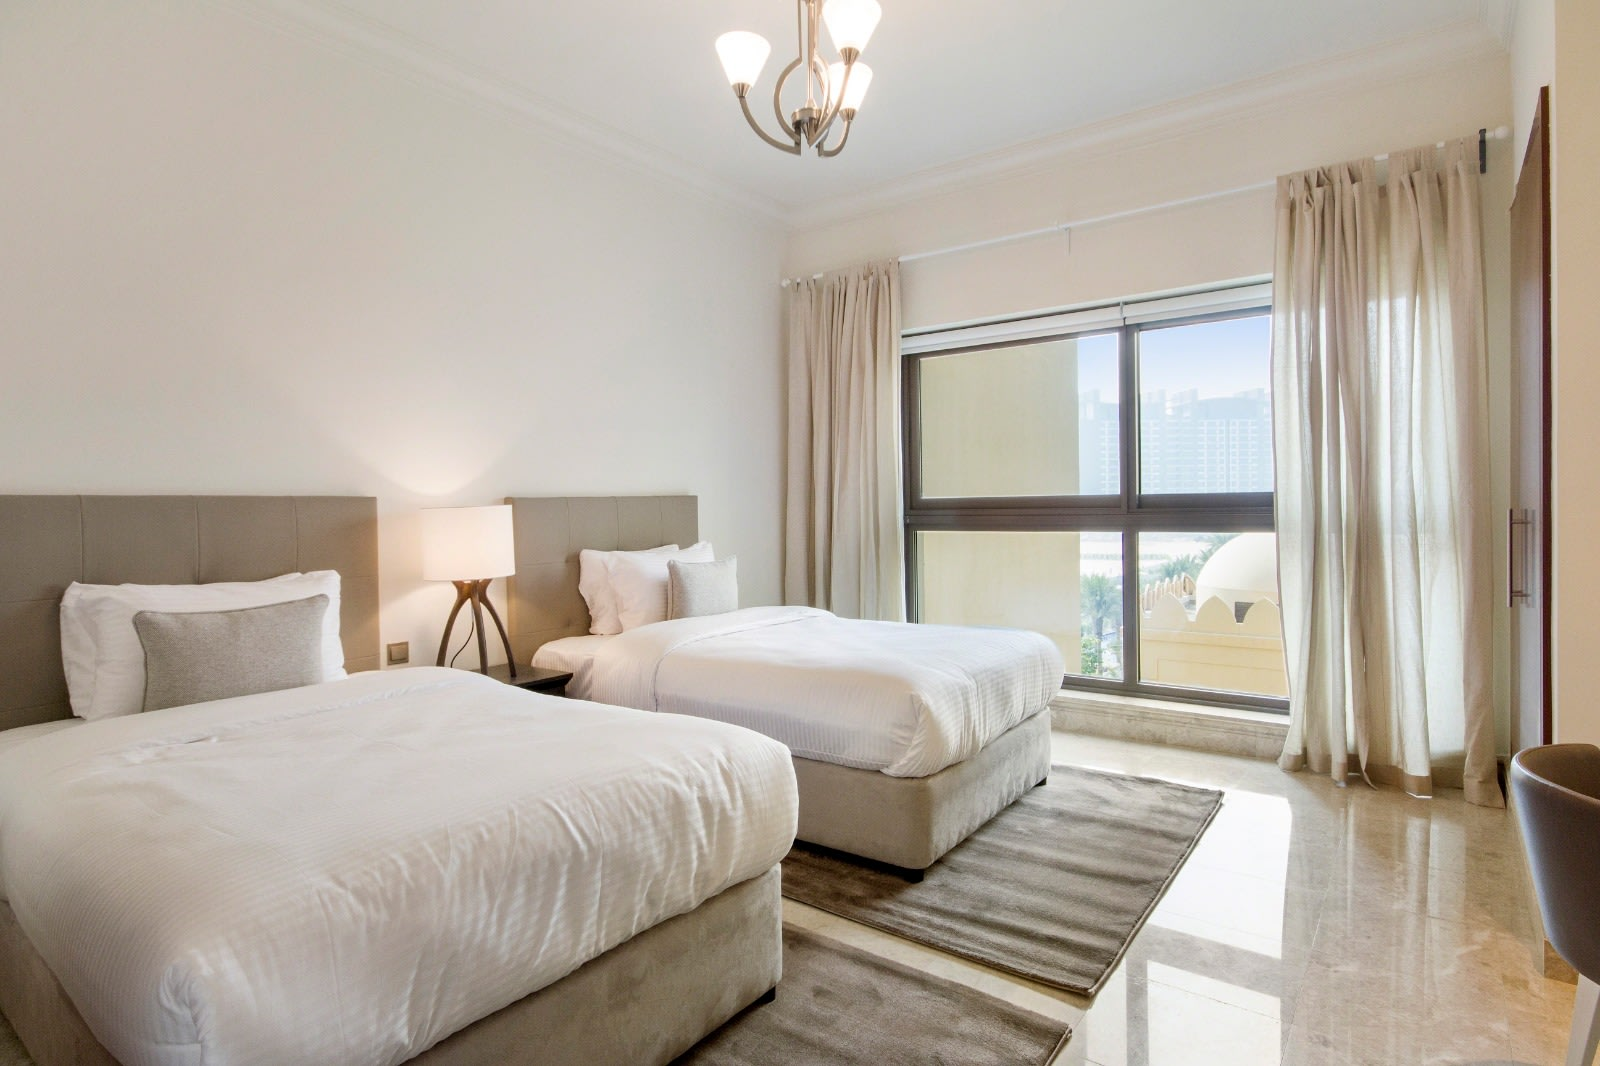 2 Bed plus Maid's | Sea Fairmont Hotel Facing